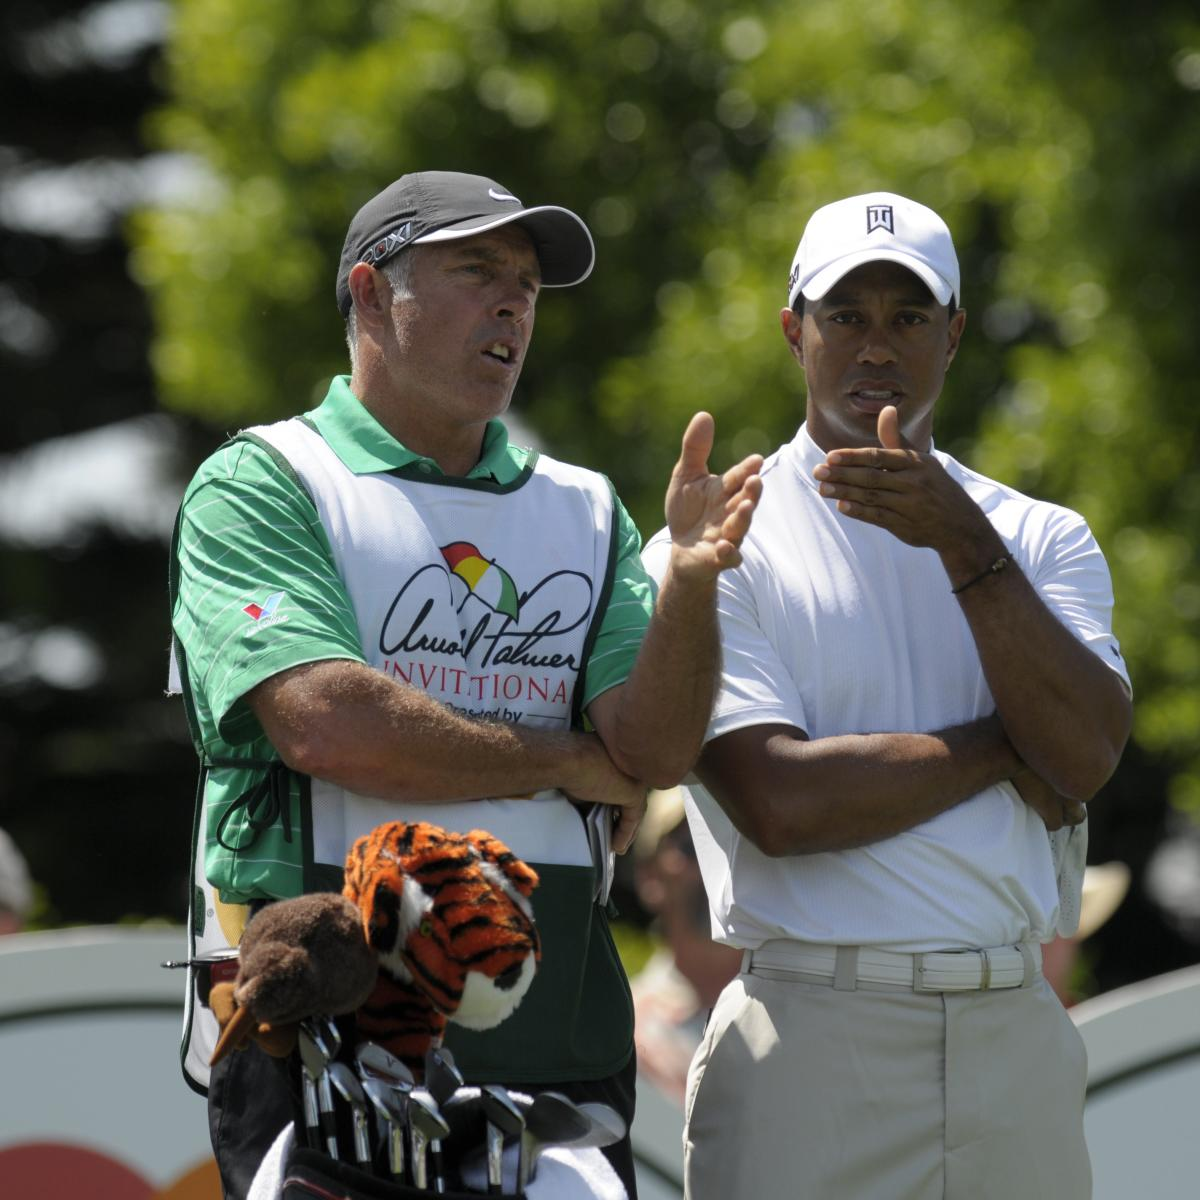 Tiger Woods winning the 2019 Masters wasn't just a big moment for Woods himself. According to his former caddie Steve Williams, the latest victory can help provide a jolt to the sport as a whole...